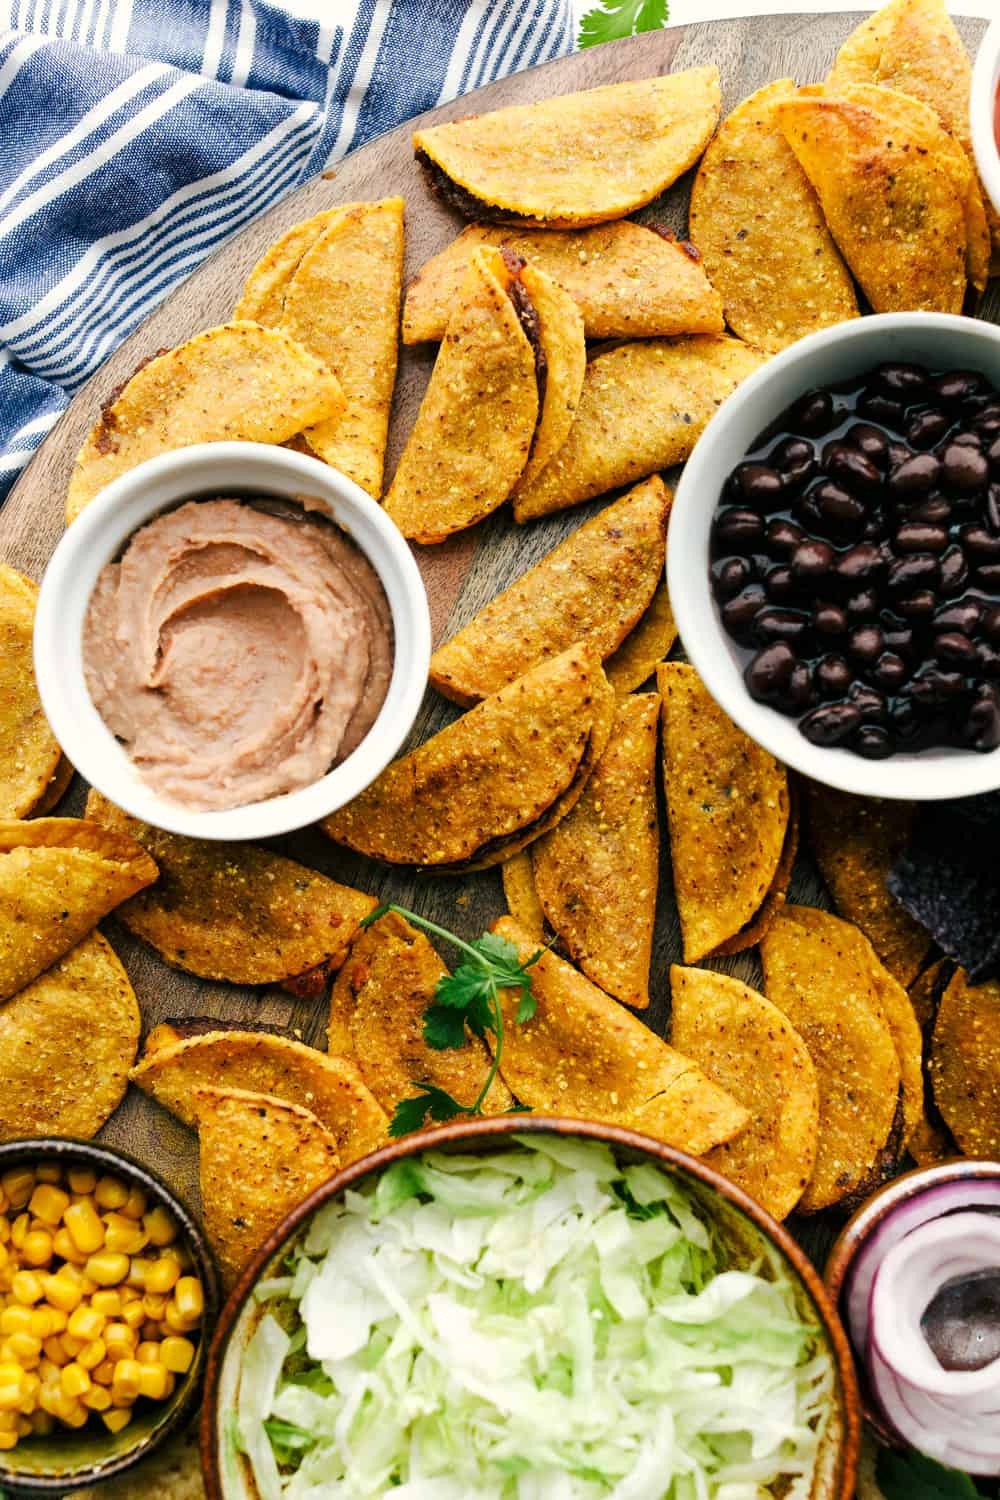 Taco board with tacos, bean dip, black beans, corn and lettuce in bowls on a board.